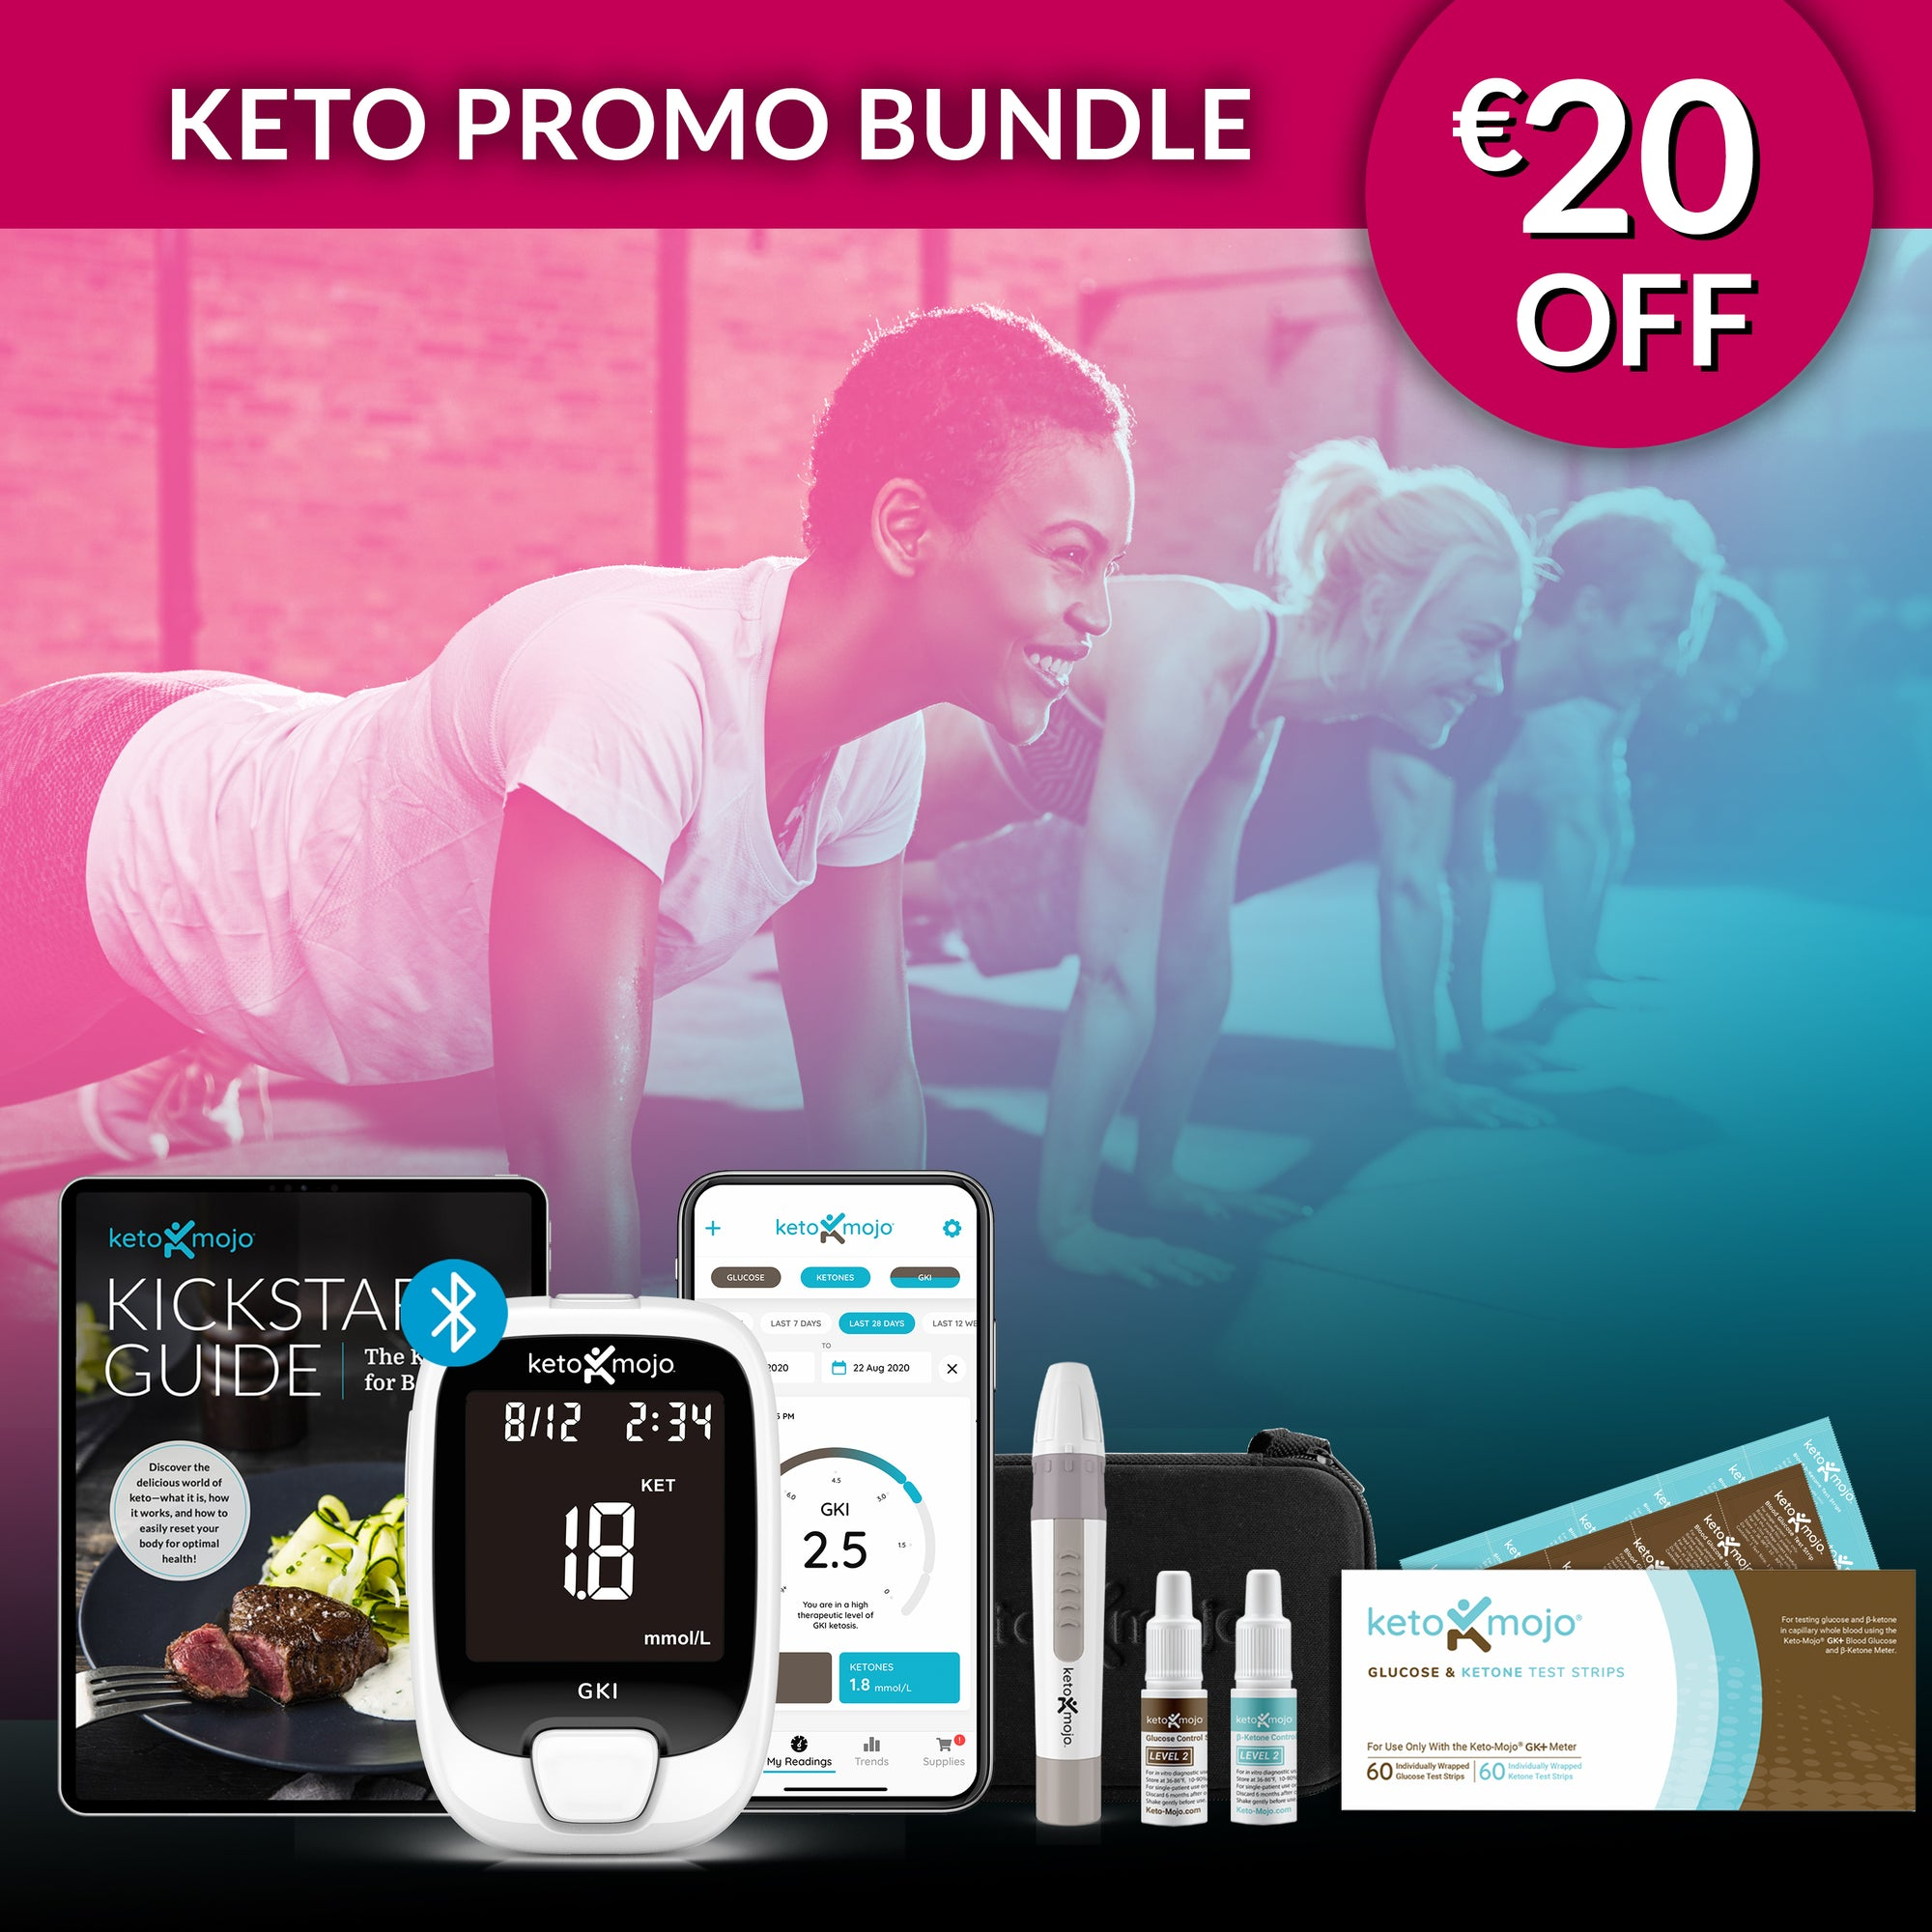 GKI-Bluetooth Blood Glucose & Ketone Meter Kit - PROMO PACK (mg/dL)